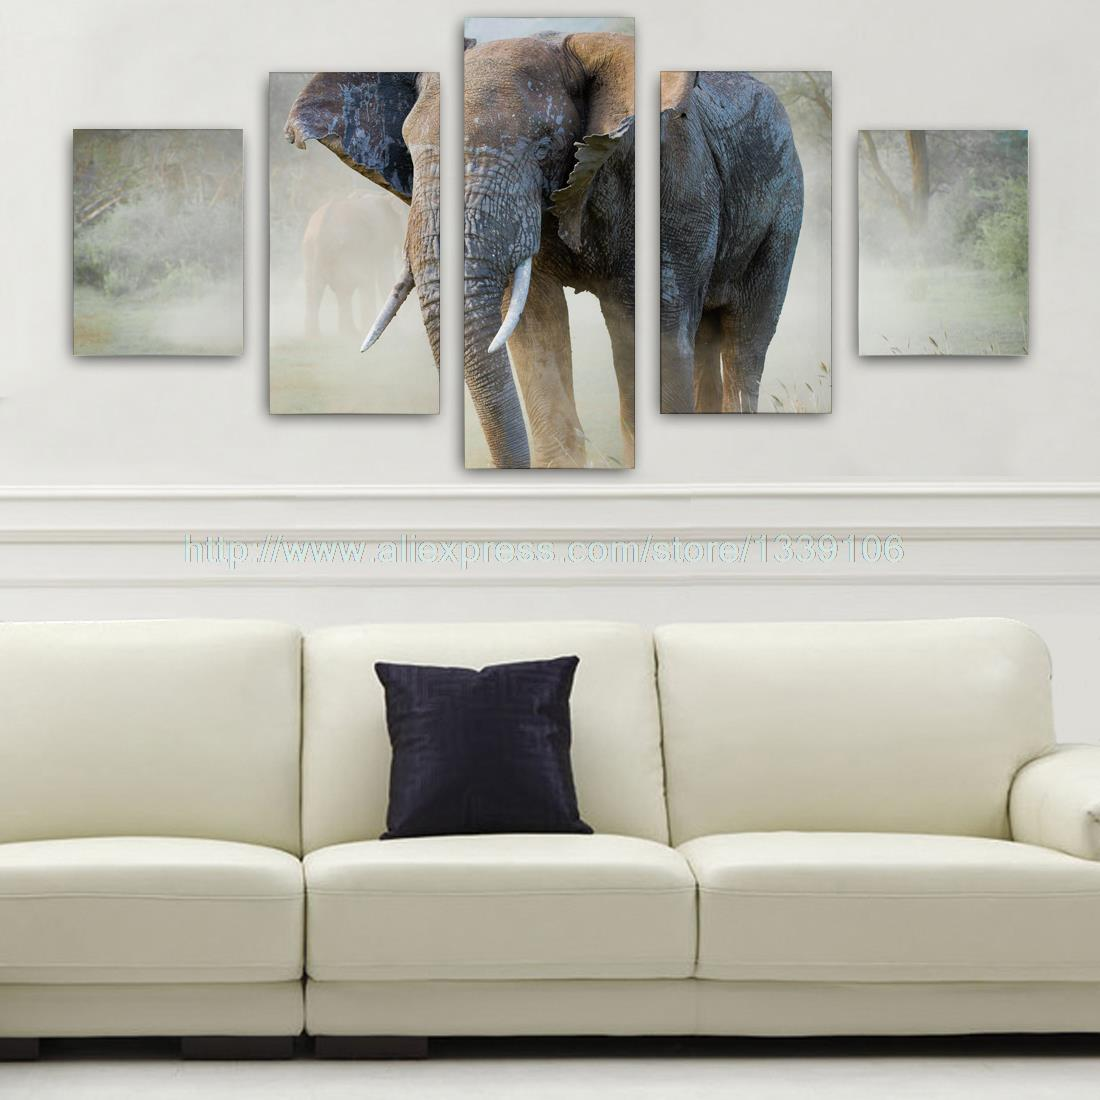 Unframed 5Pcs Wild Big Elephant Custom Wall Picture Decorative Art Print Painting On Canvas For Living Room Home Decoration